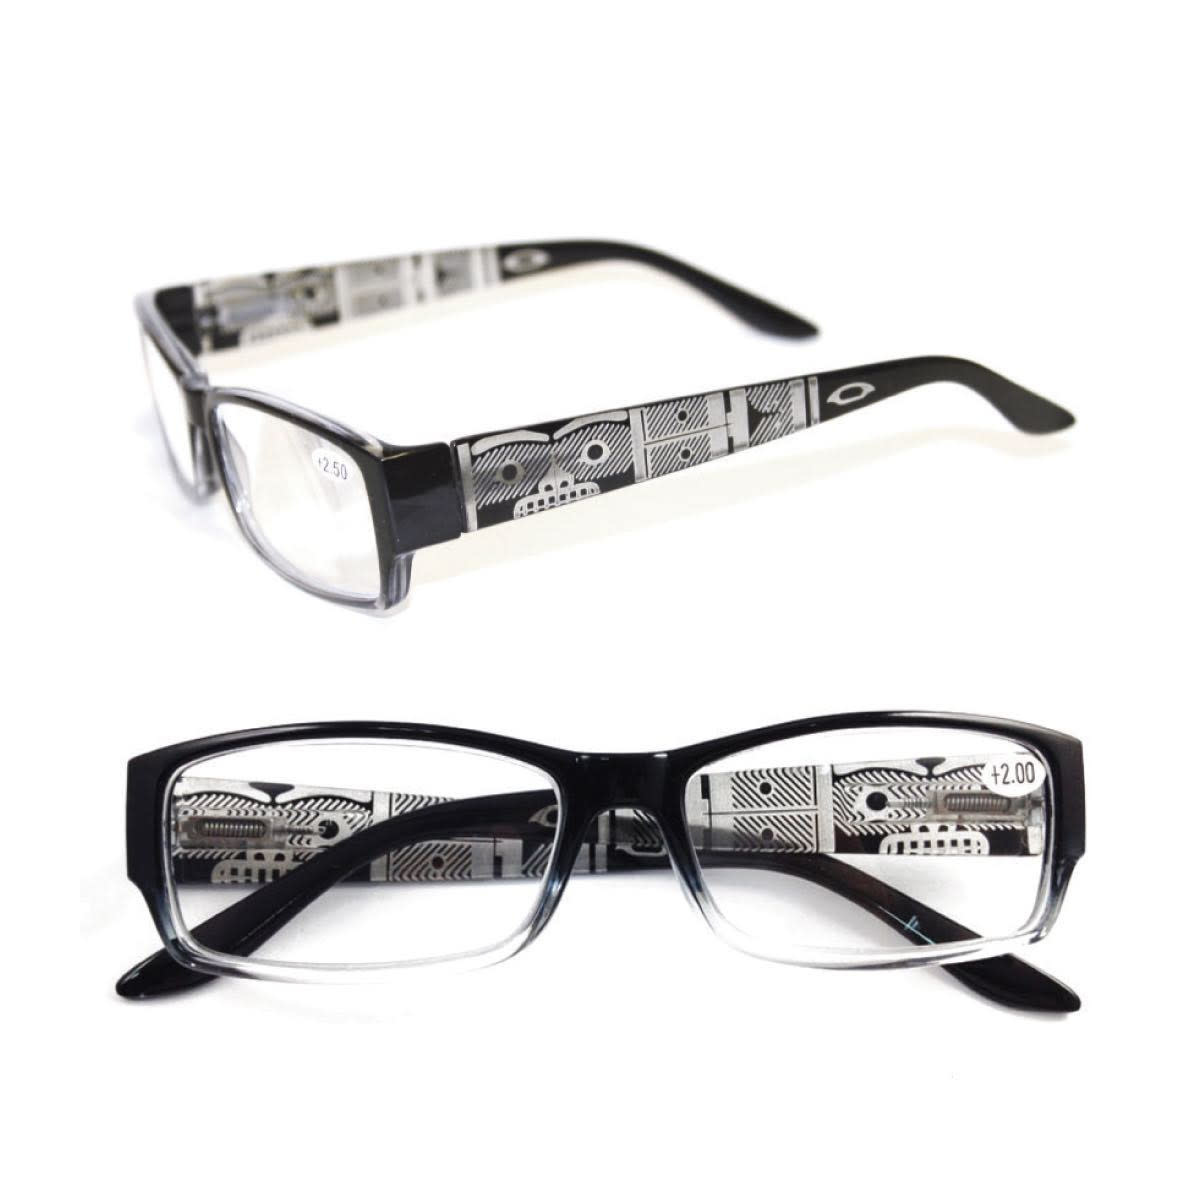 Adult Reading Glasses-3